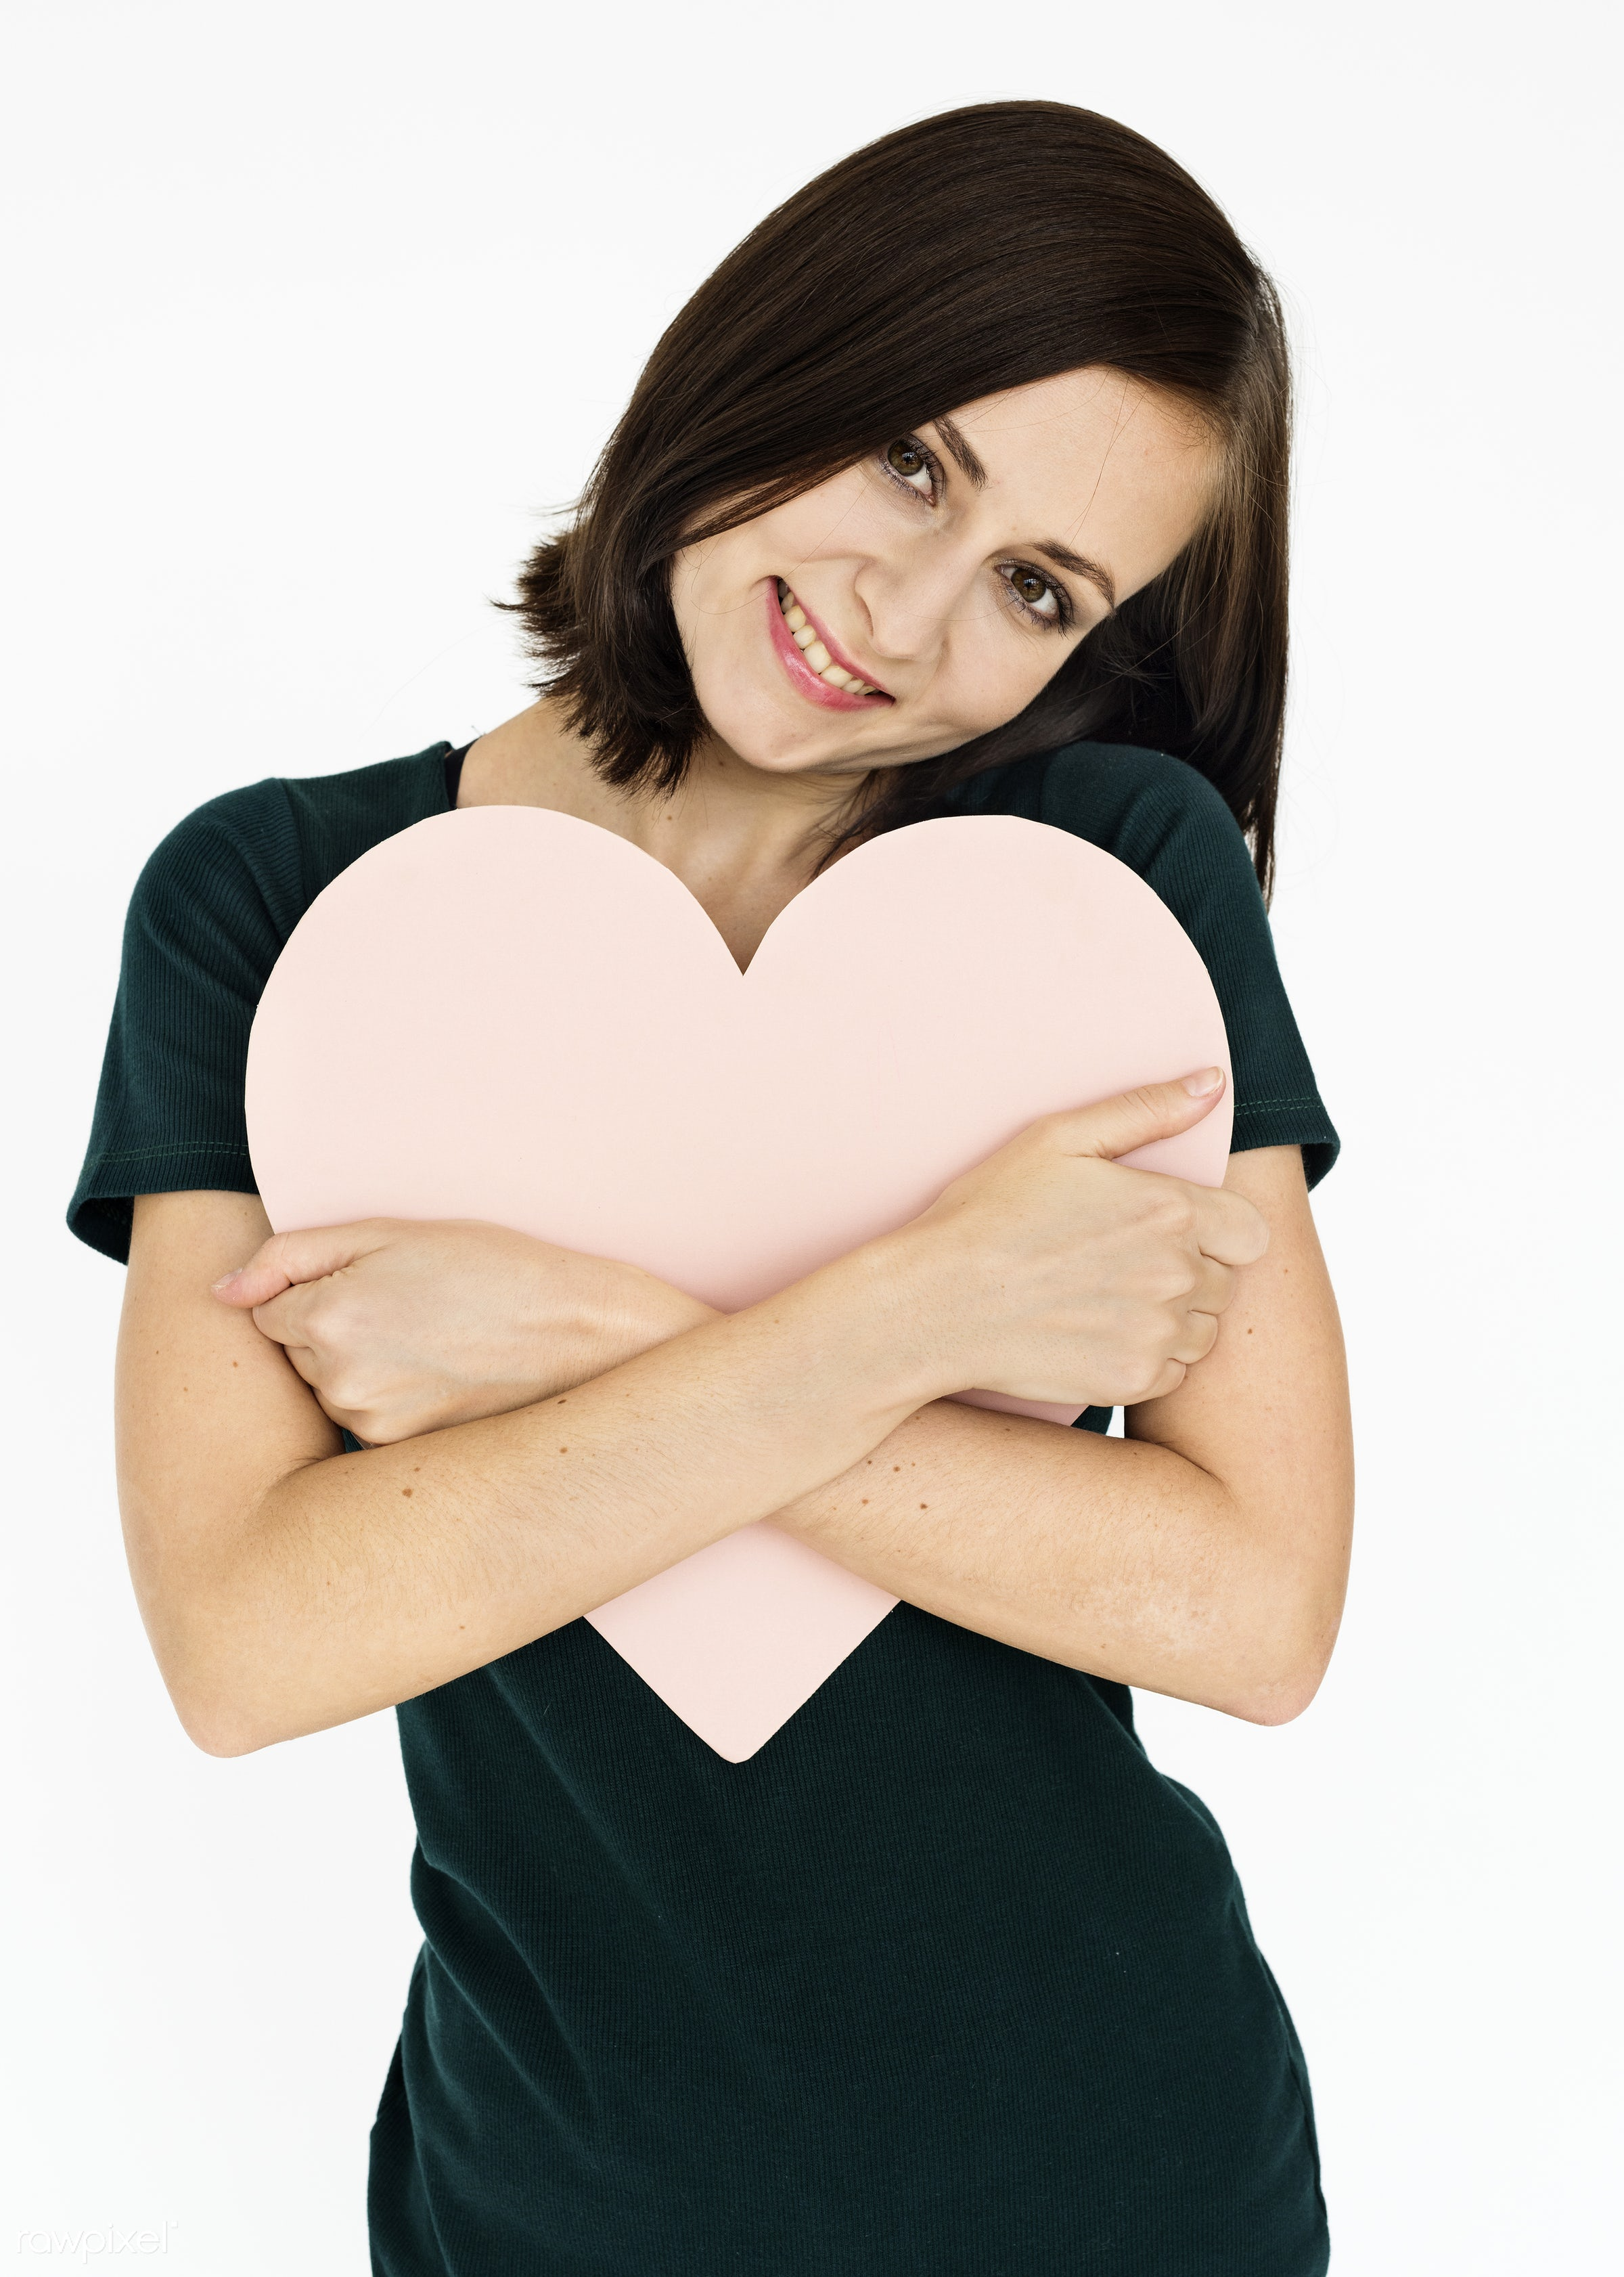 studio, expression, person, holding, people, love, woman, care, cheerful, smiling, isolated, heart, white, happiness, youth...